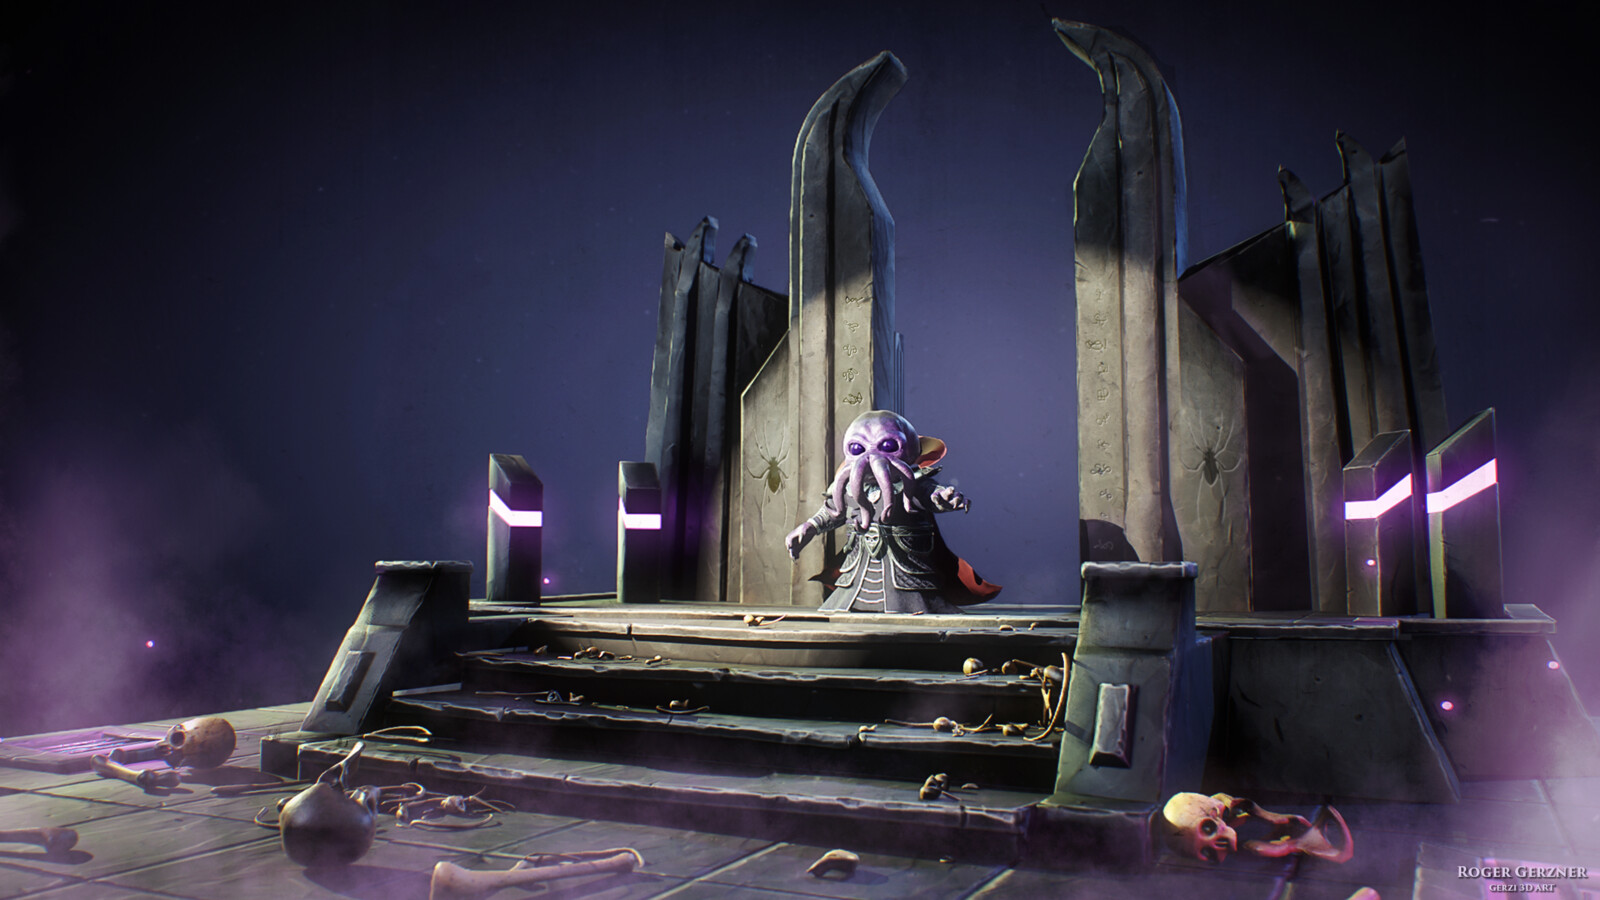 Illithid  Home Alone